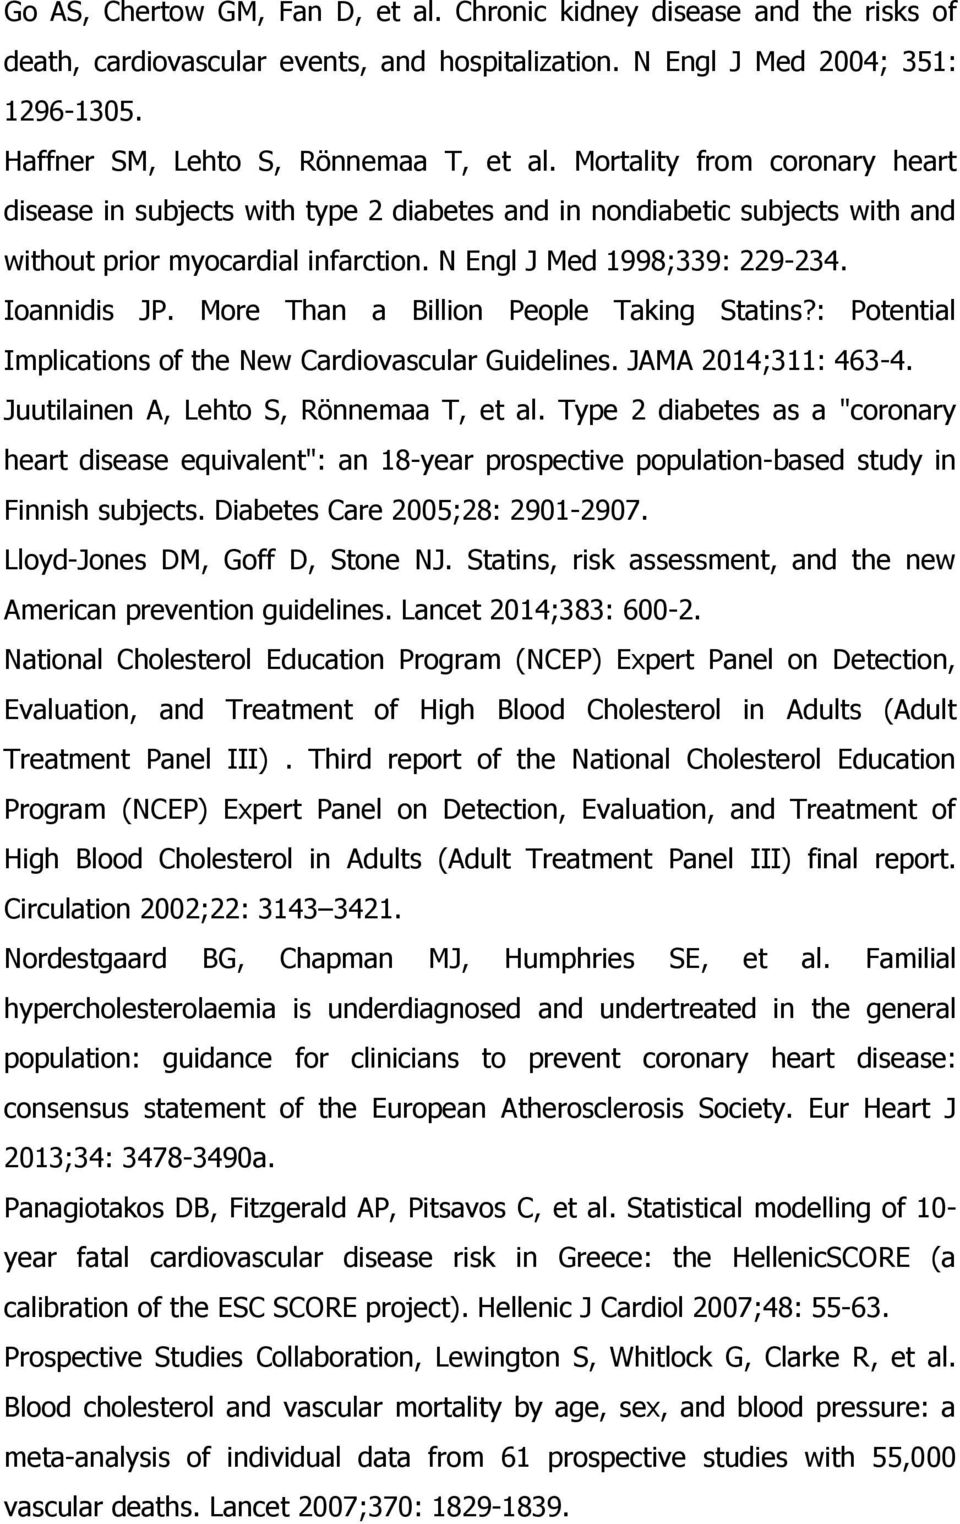 More Than a Billion People Taking Statins?: Potential Implications of the New Cardiovascular Guidelines. JAMA 2014;311: 463-4. Juutilainen A, Lehto S, Rönnemaa T, et al.